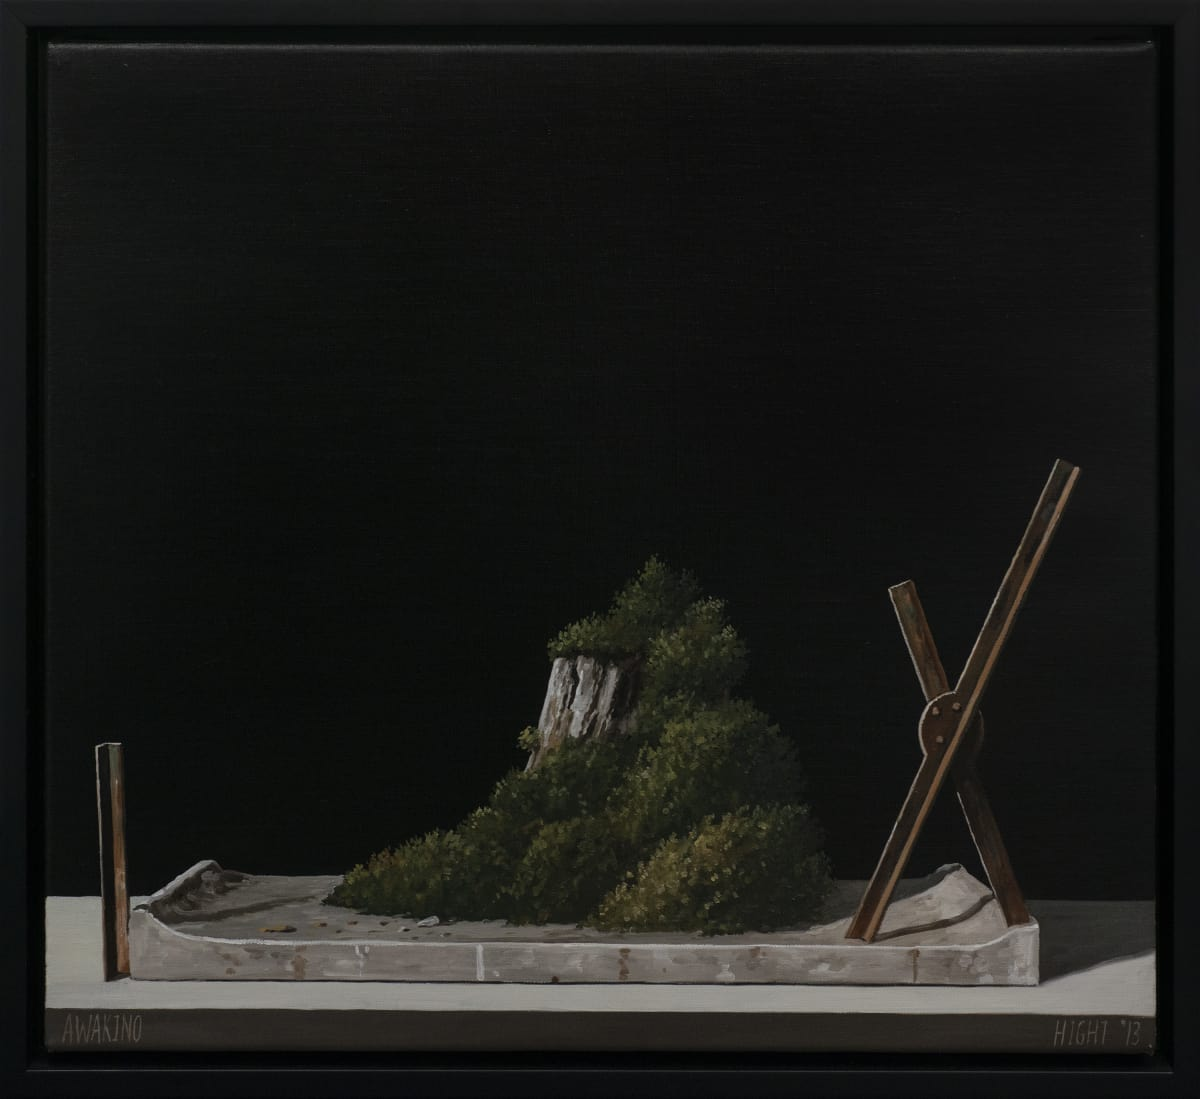 Michael Hight Awakino, 2012 Oil on linen 14 x 16.1 in 35.5 x 41 cm